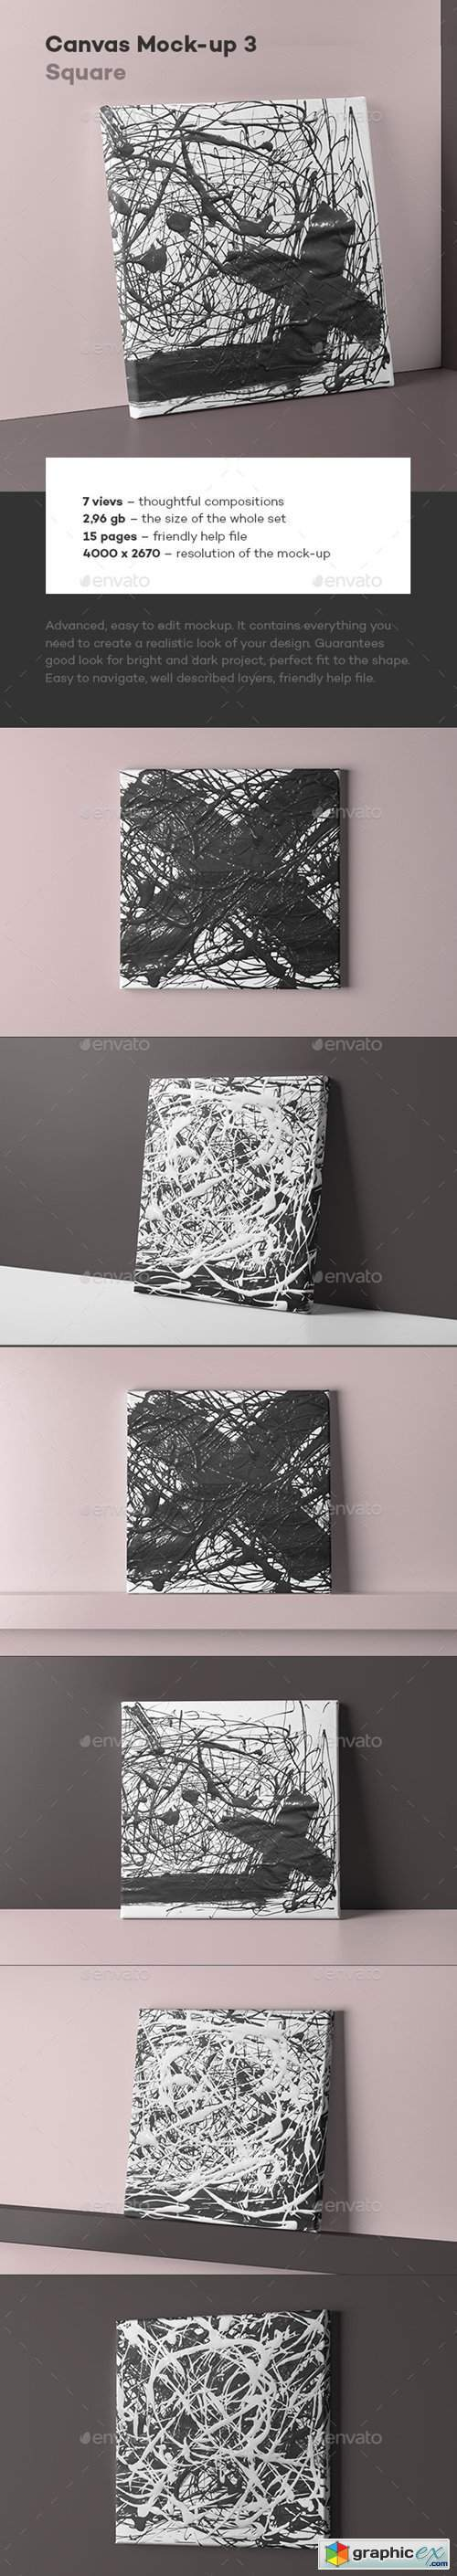 Canvas Mock-up 3